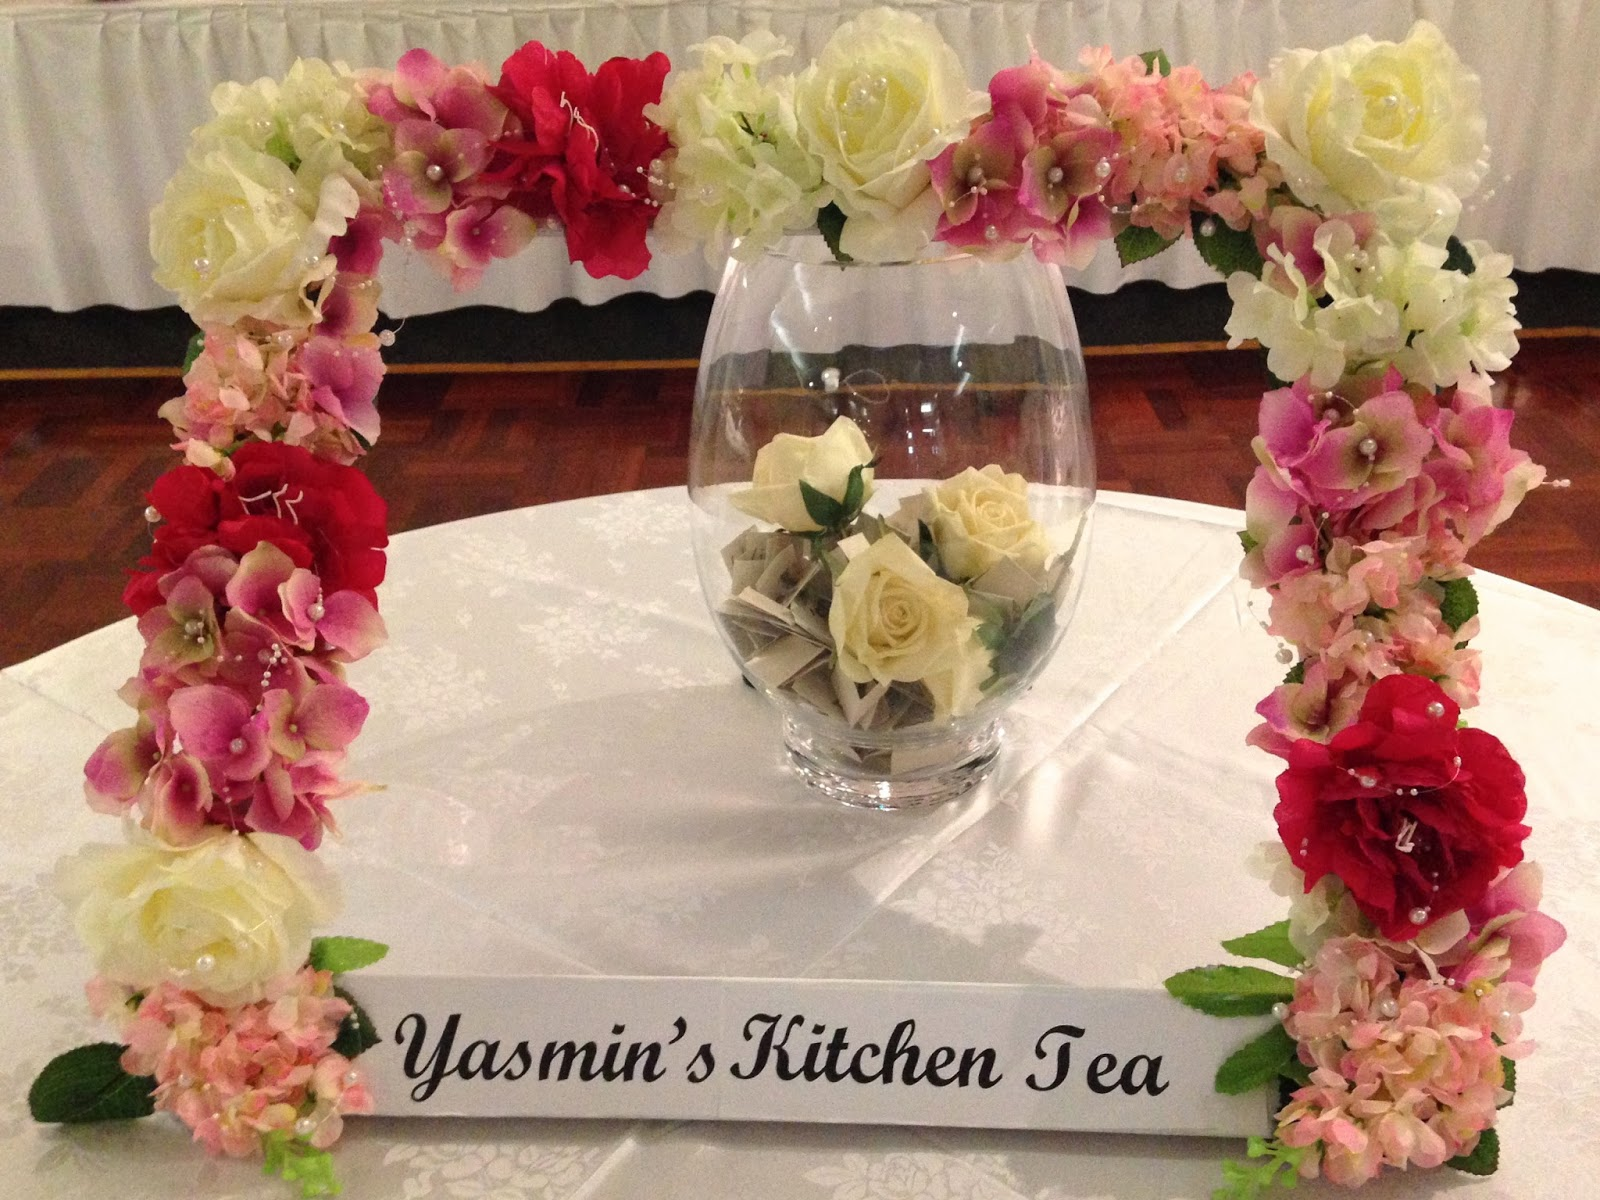 Party Ideas Pretty In Pink Floral Kitchen Tea Ideas Basil And  Kitchen Tea Gift For Guests   picgit com. Gift Ideas For A Kitchen Tea Party. Home Design Ideas